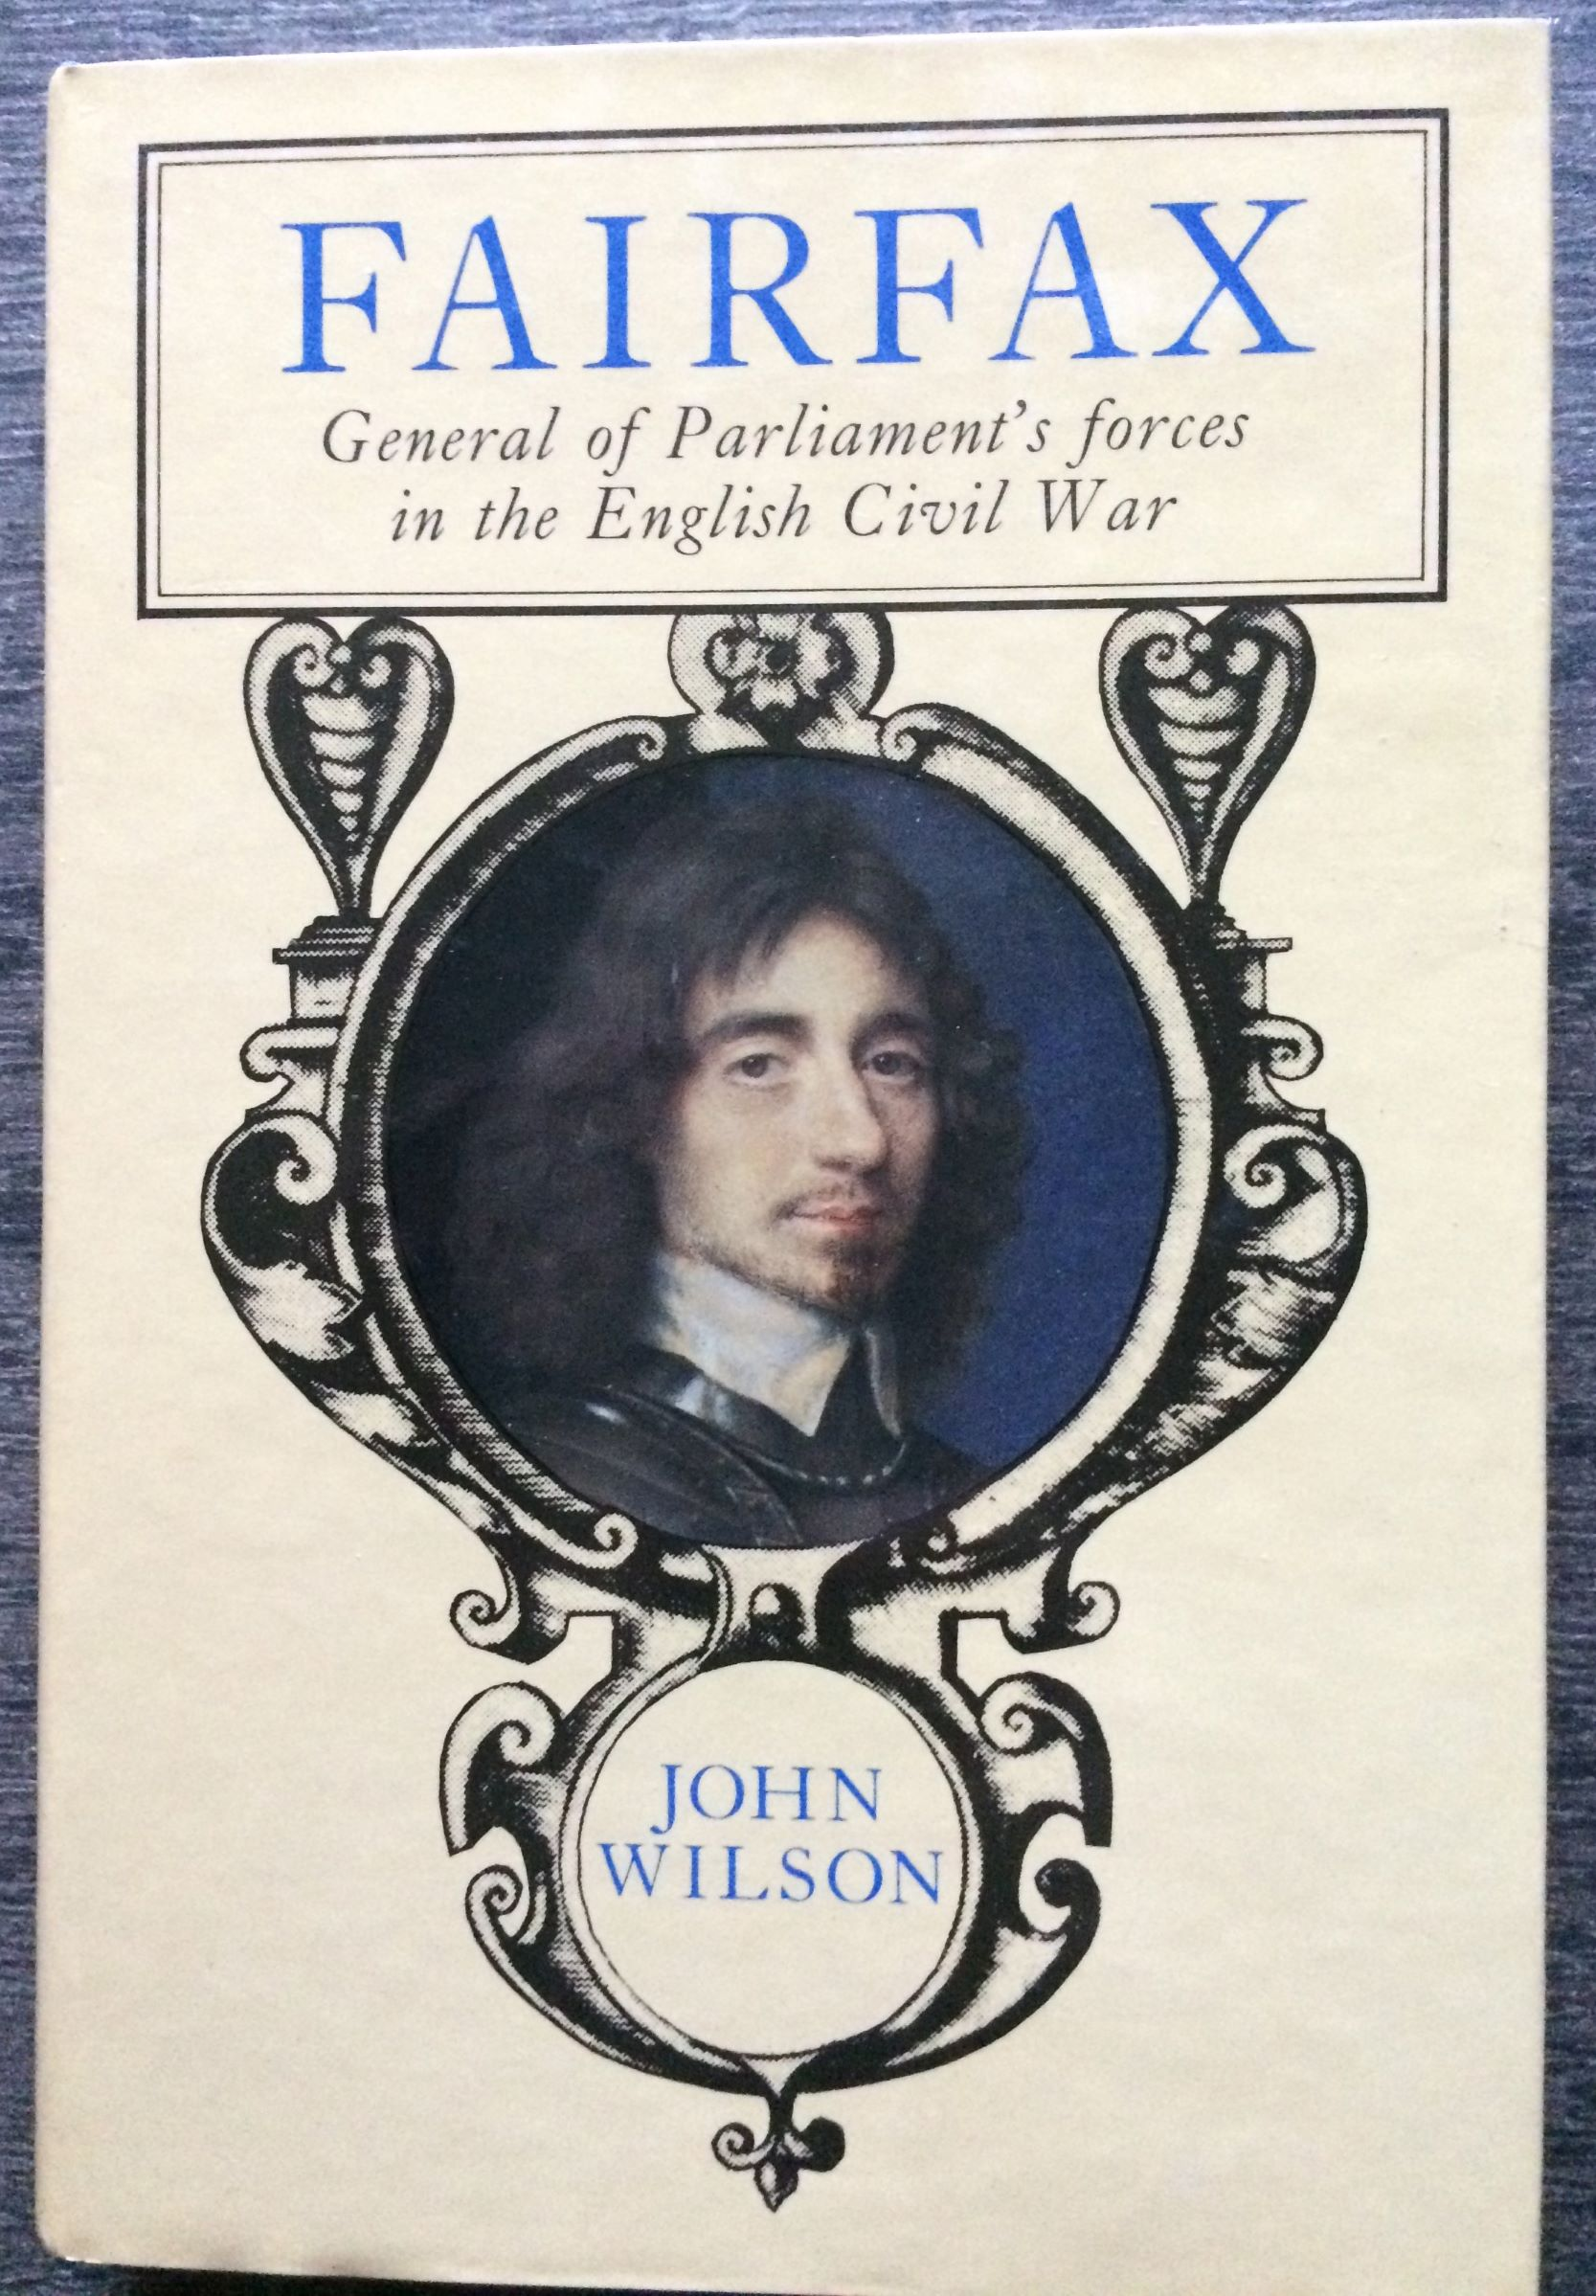 Image for Fairfax : a life of Thomas, Lord Fairfax, Captain-General of all the Parliament's forces in the Engl. Civil War, Creator & Commander of the New Model Army.